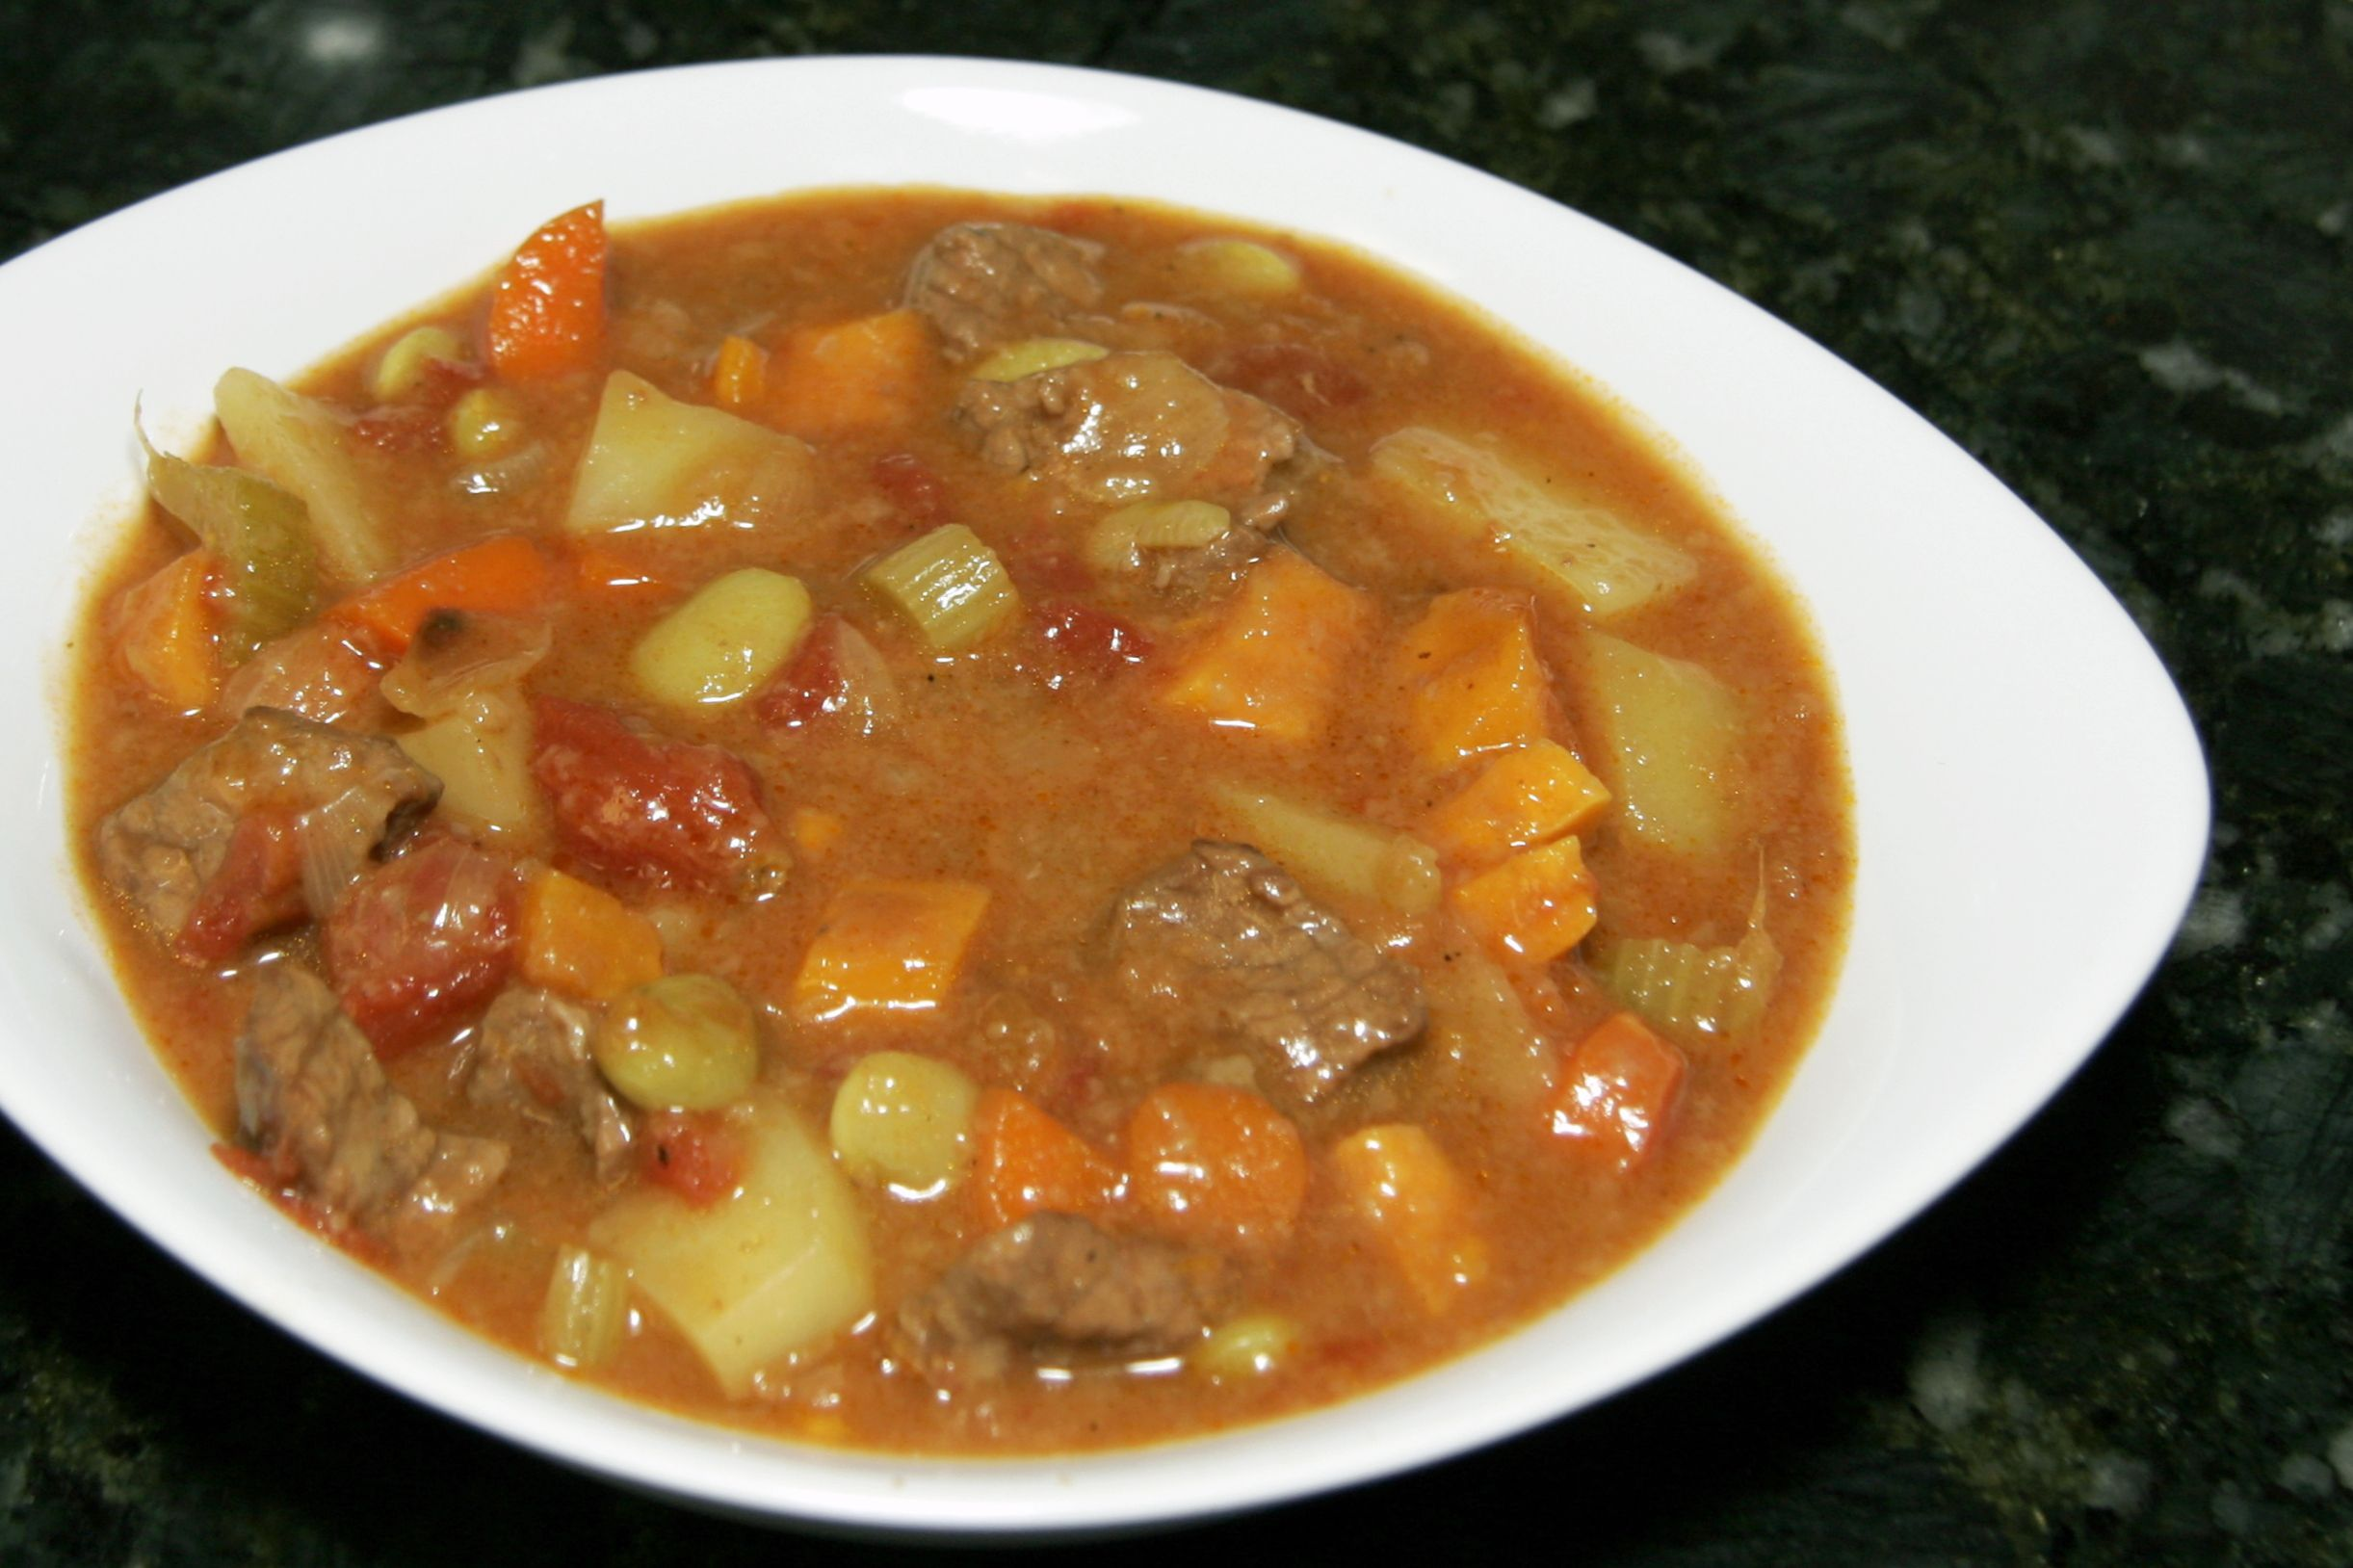 Curried Beef Stew (Slow Cooker or Stovetop)